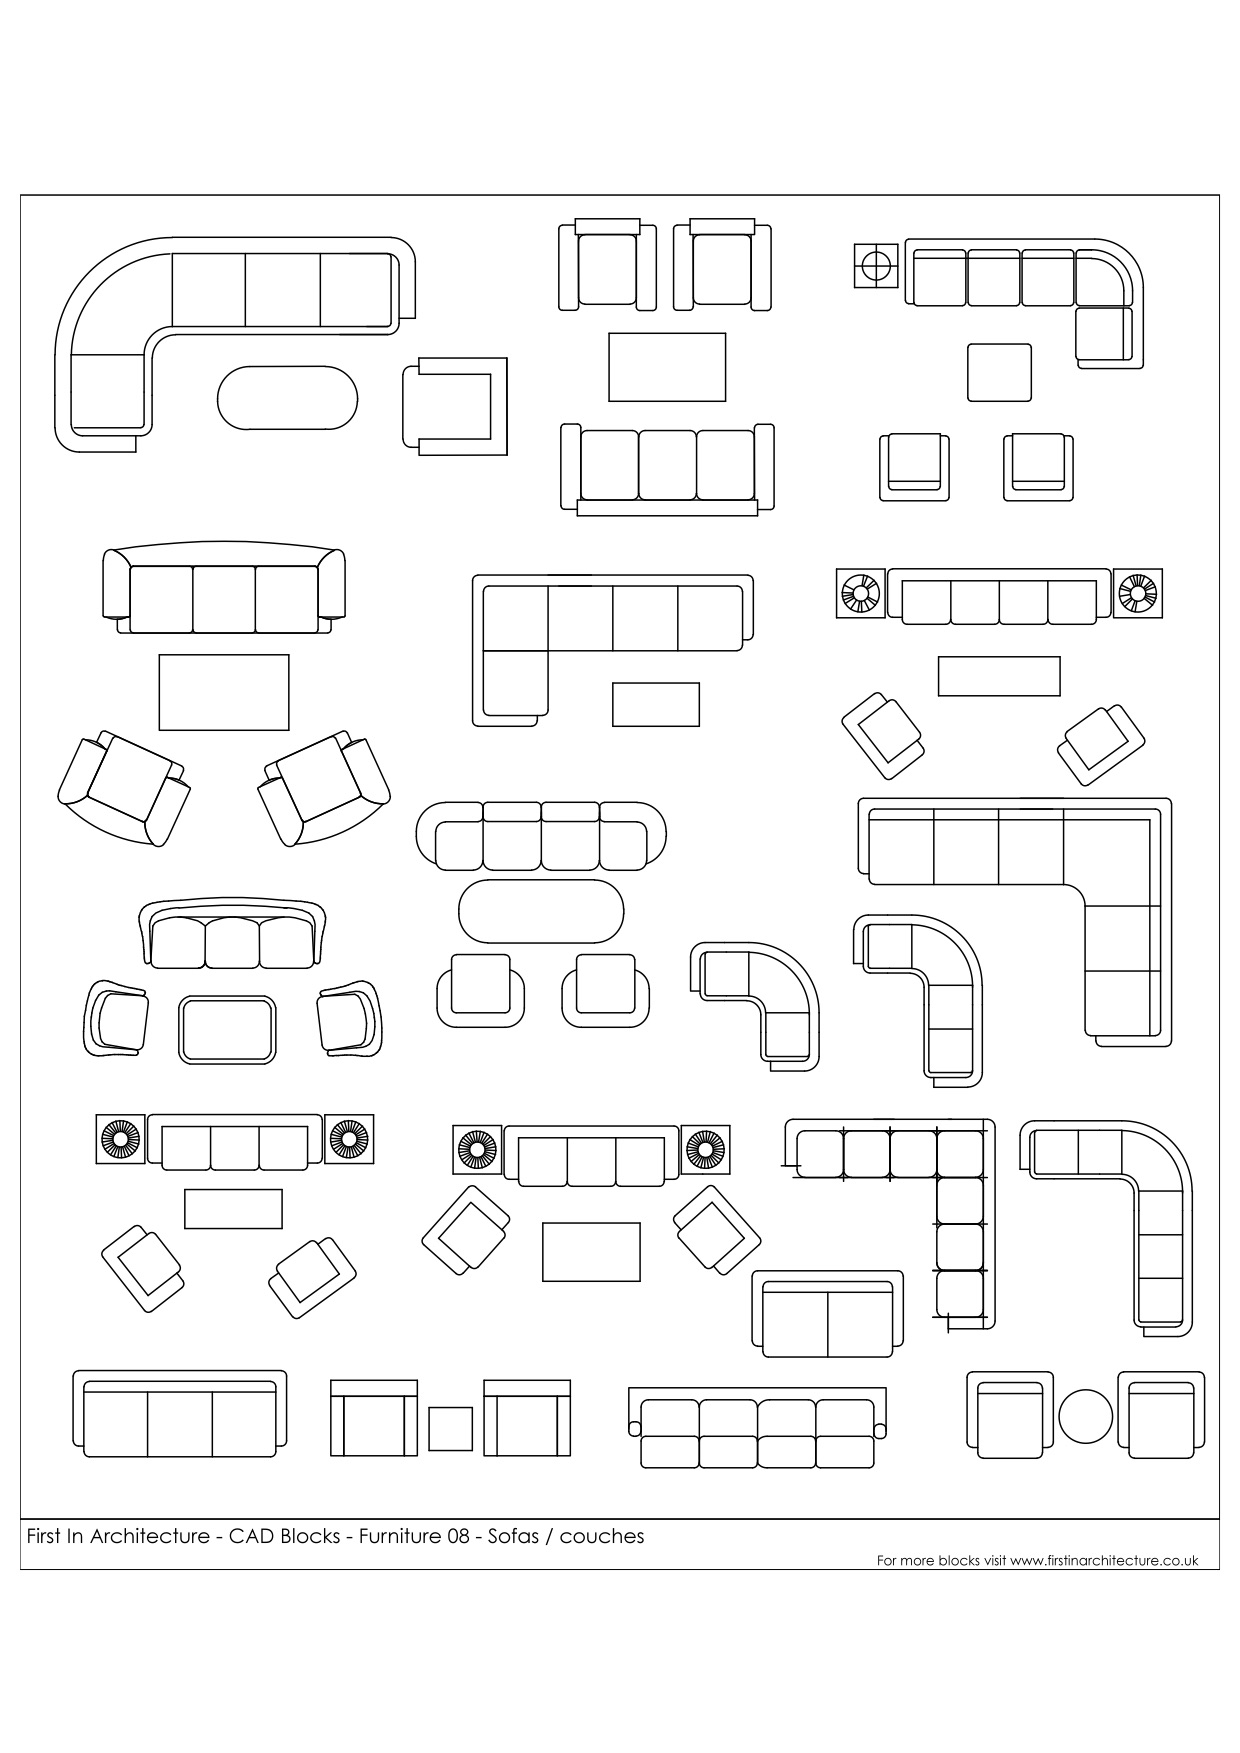 living room couch and loveseat layout country rooms uk free cad blocks - sofas couches